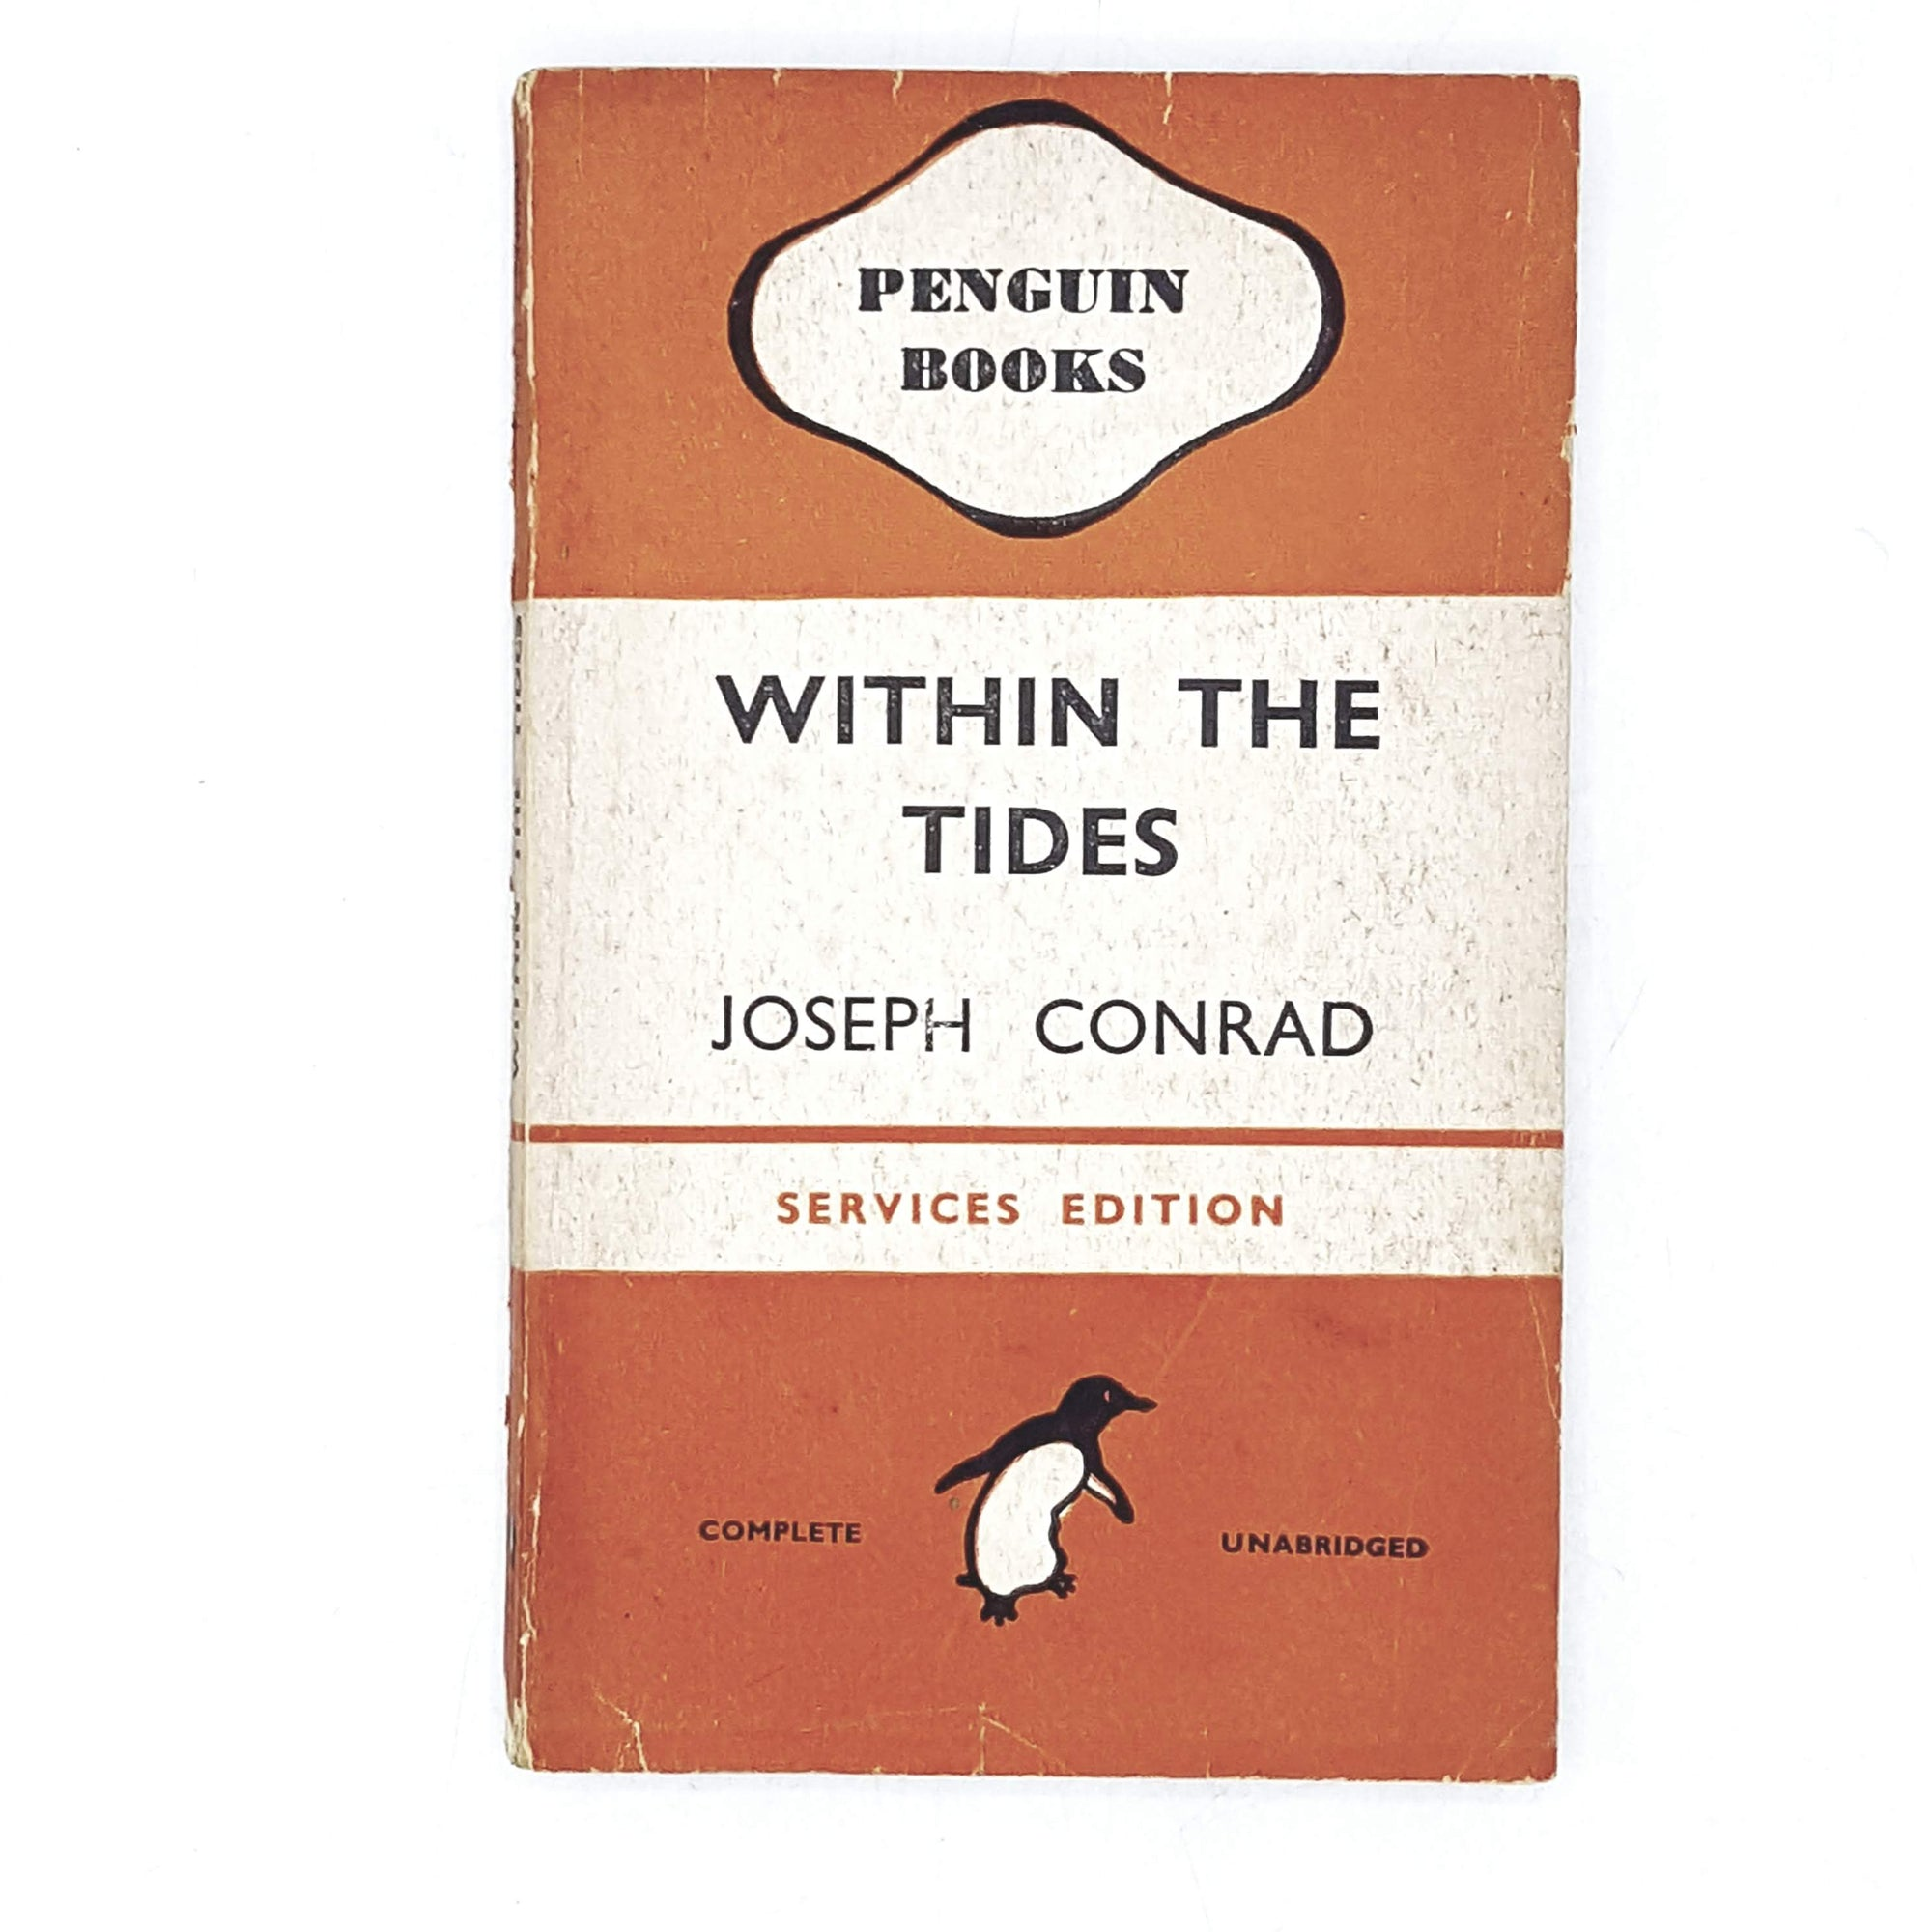 Vintage Penguin Within the Tides by Joseph Conrad 1945